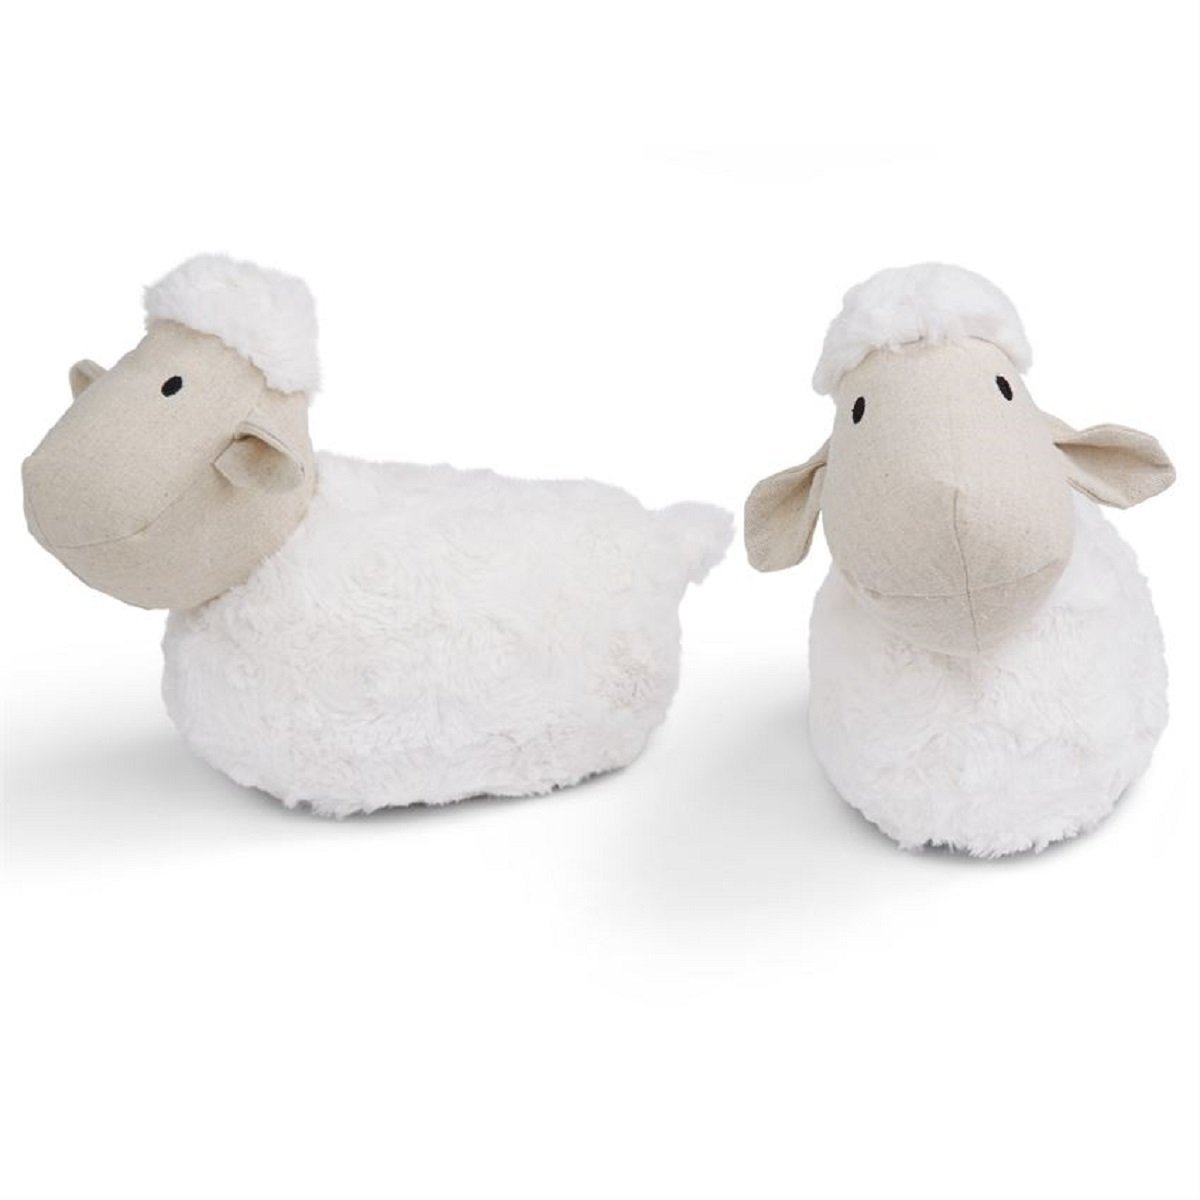 Mud Pie Baby Nursery Decor 2 Piece Weighted Lamb Bookends 2002249